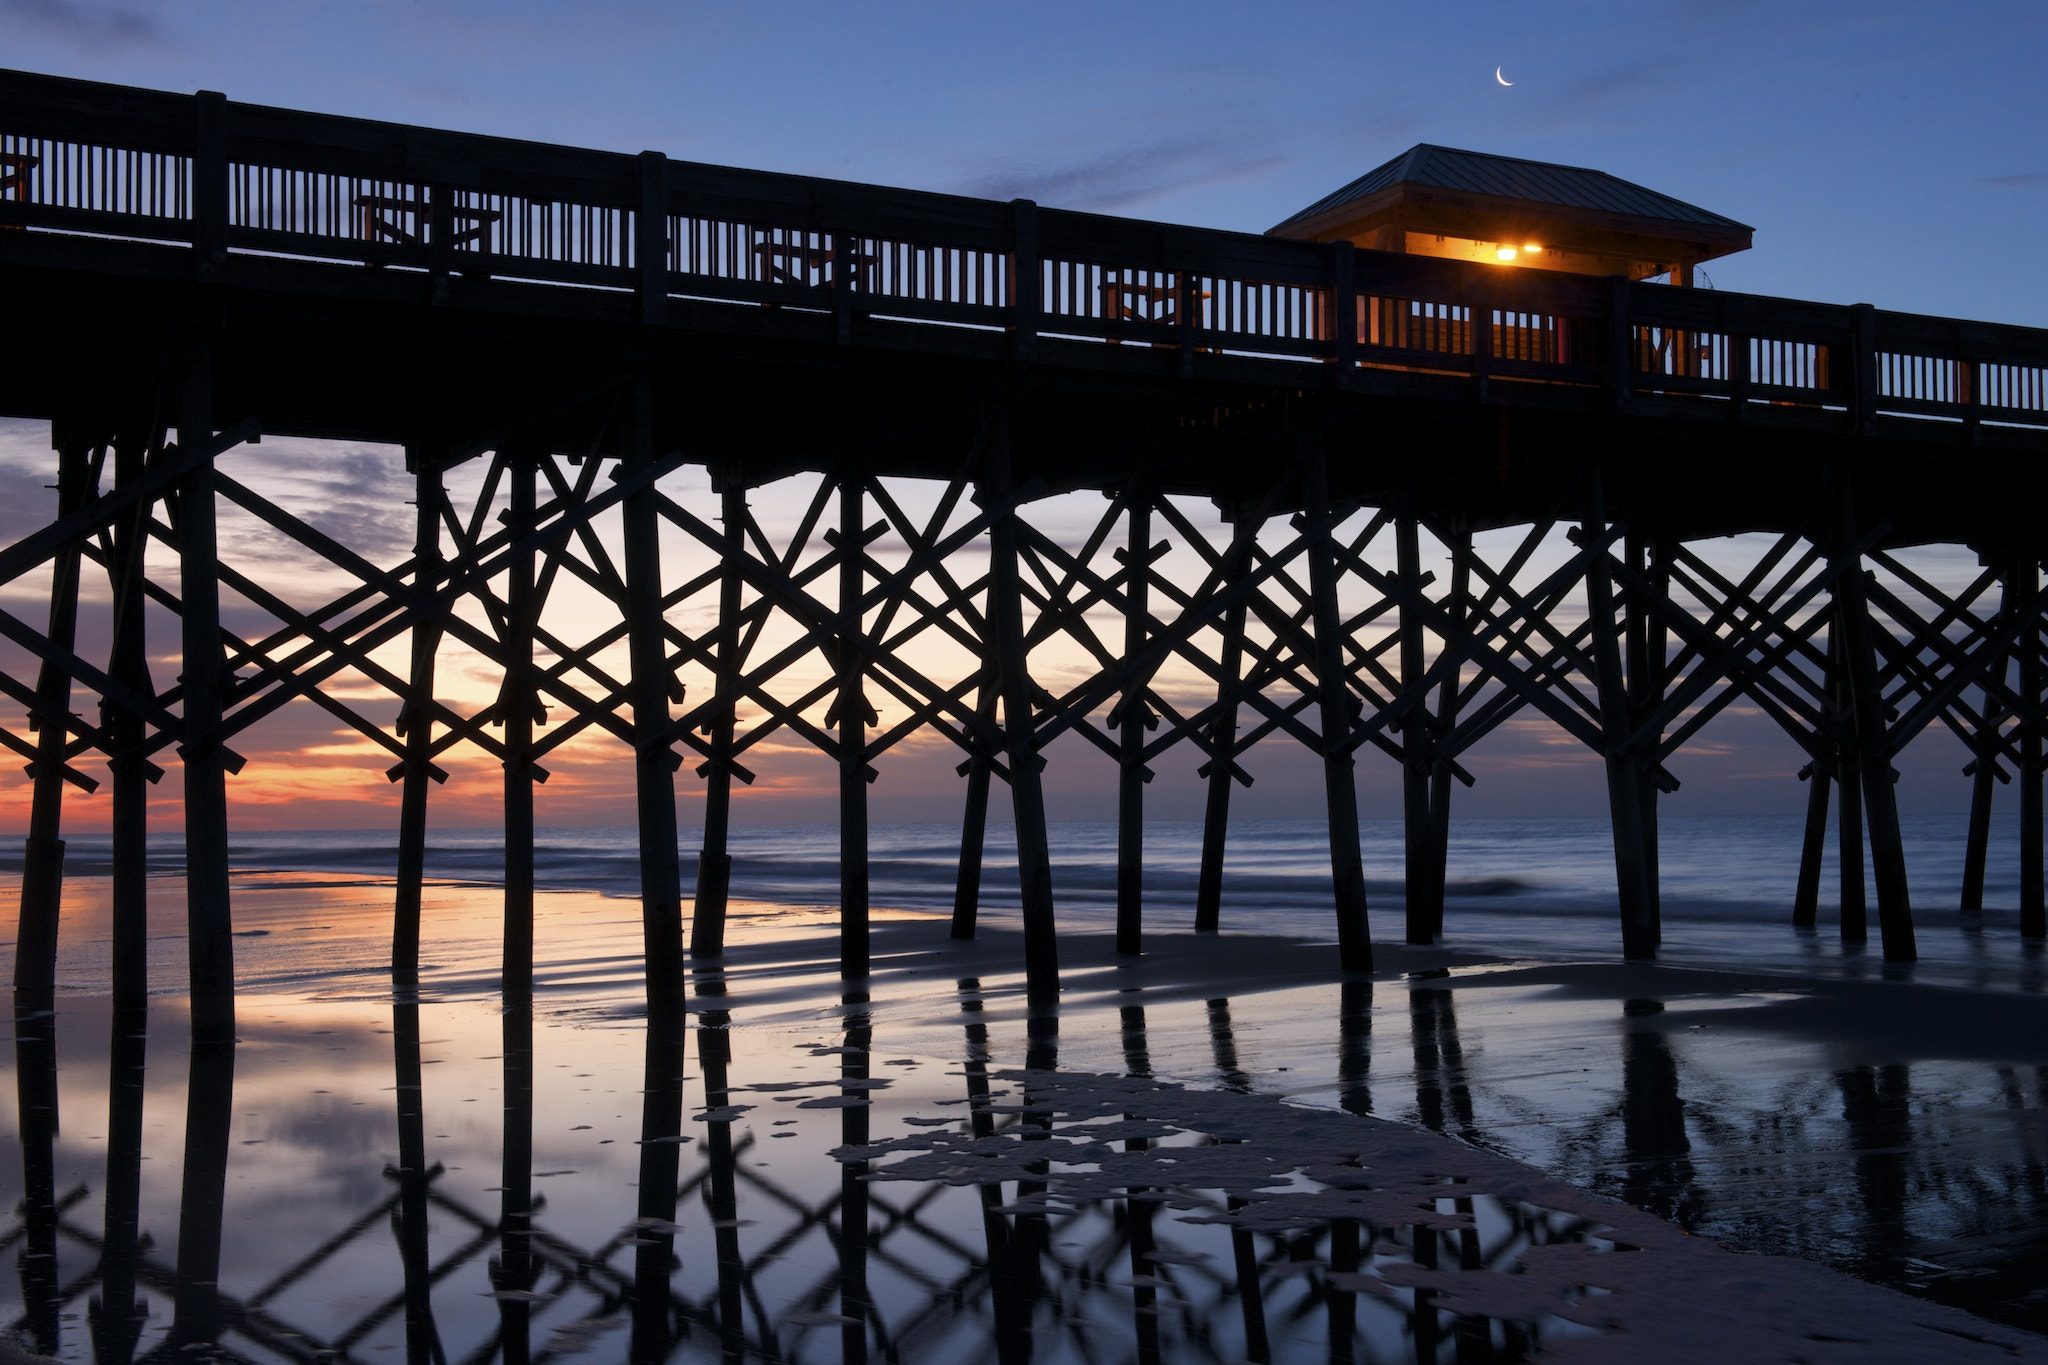 Photograph folly beach pier by Tony Sweet on 500px